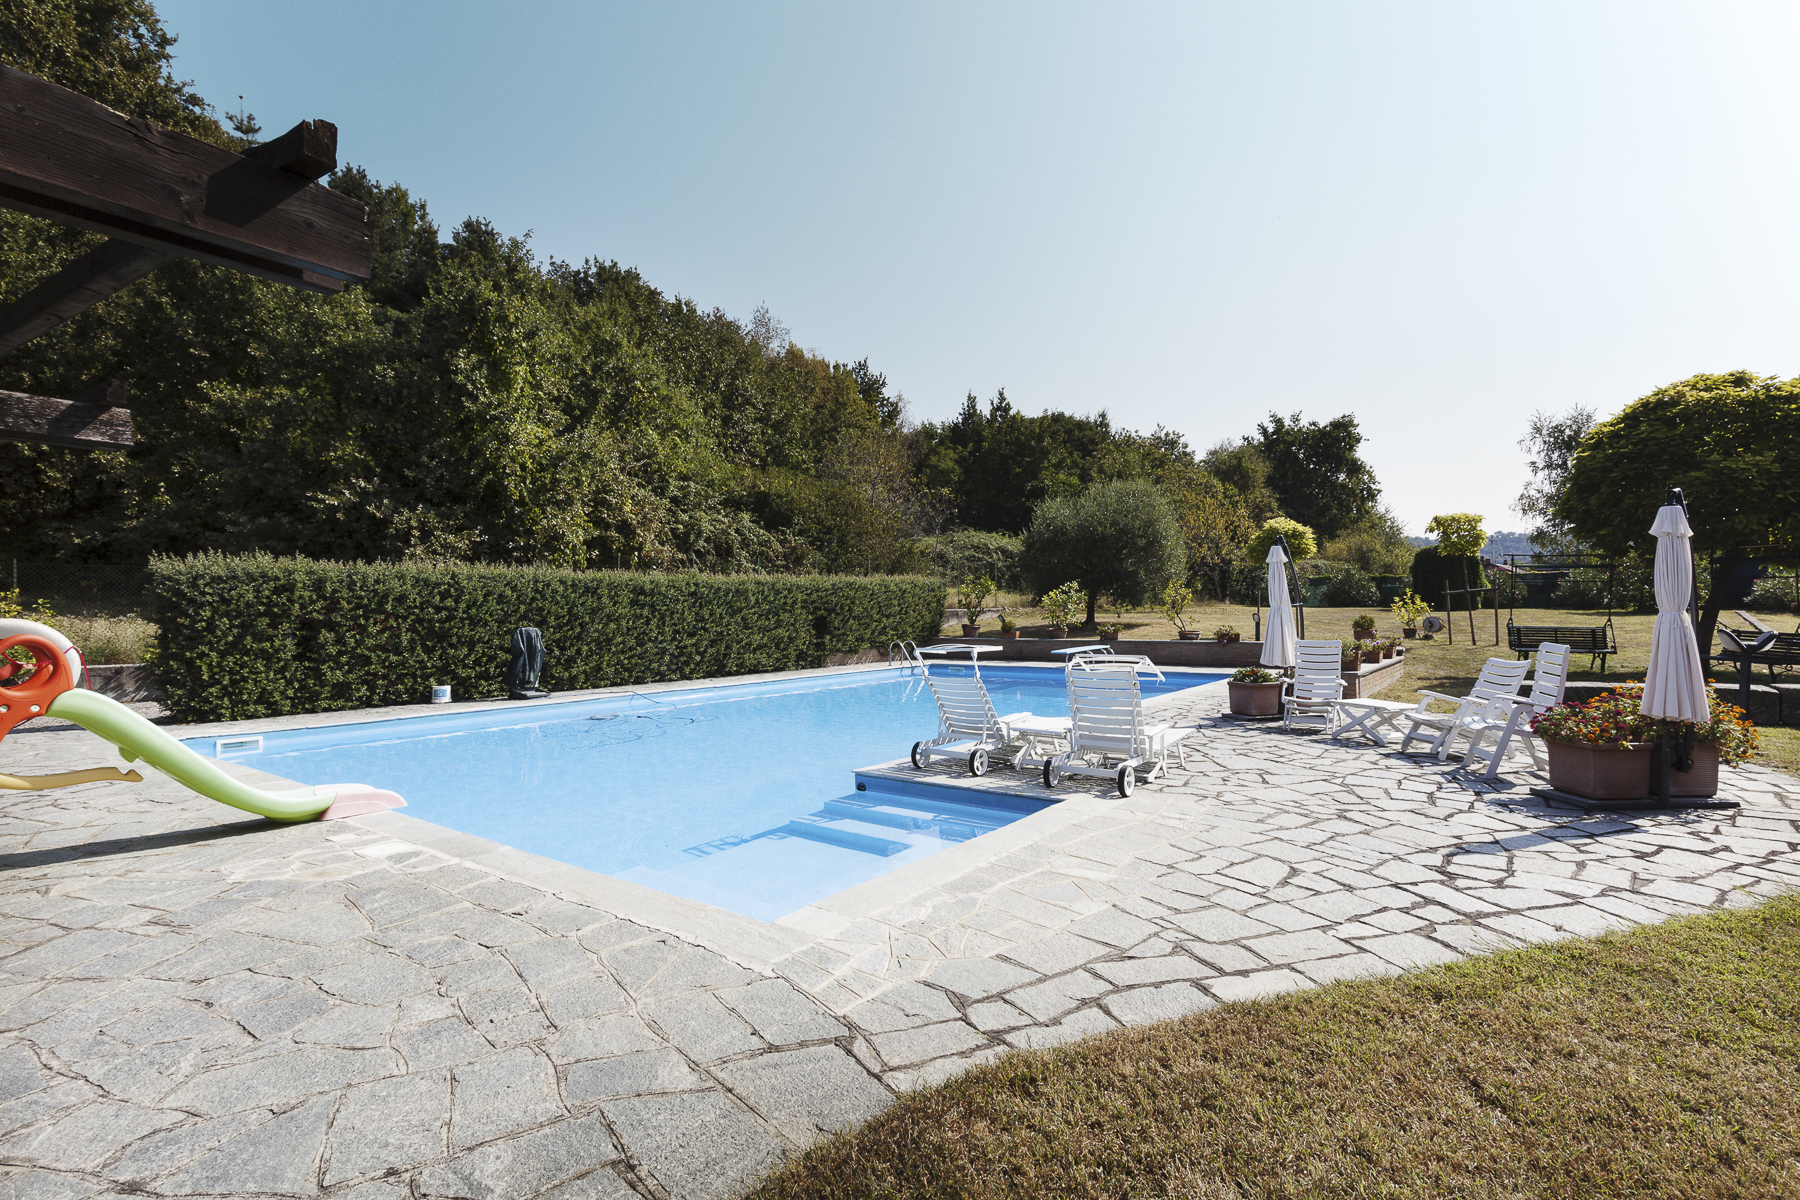 Additional photo for property listing at Unique Villa with swimming pool Piazza Rampone Biella, Biella 13883 Italia